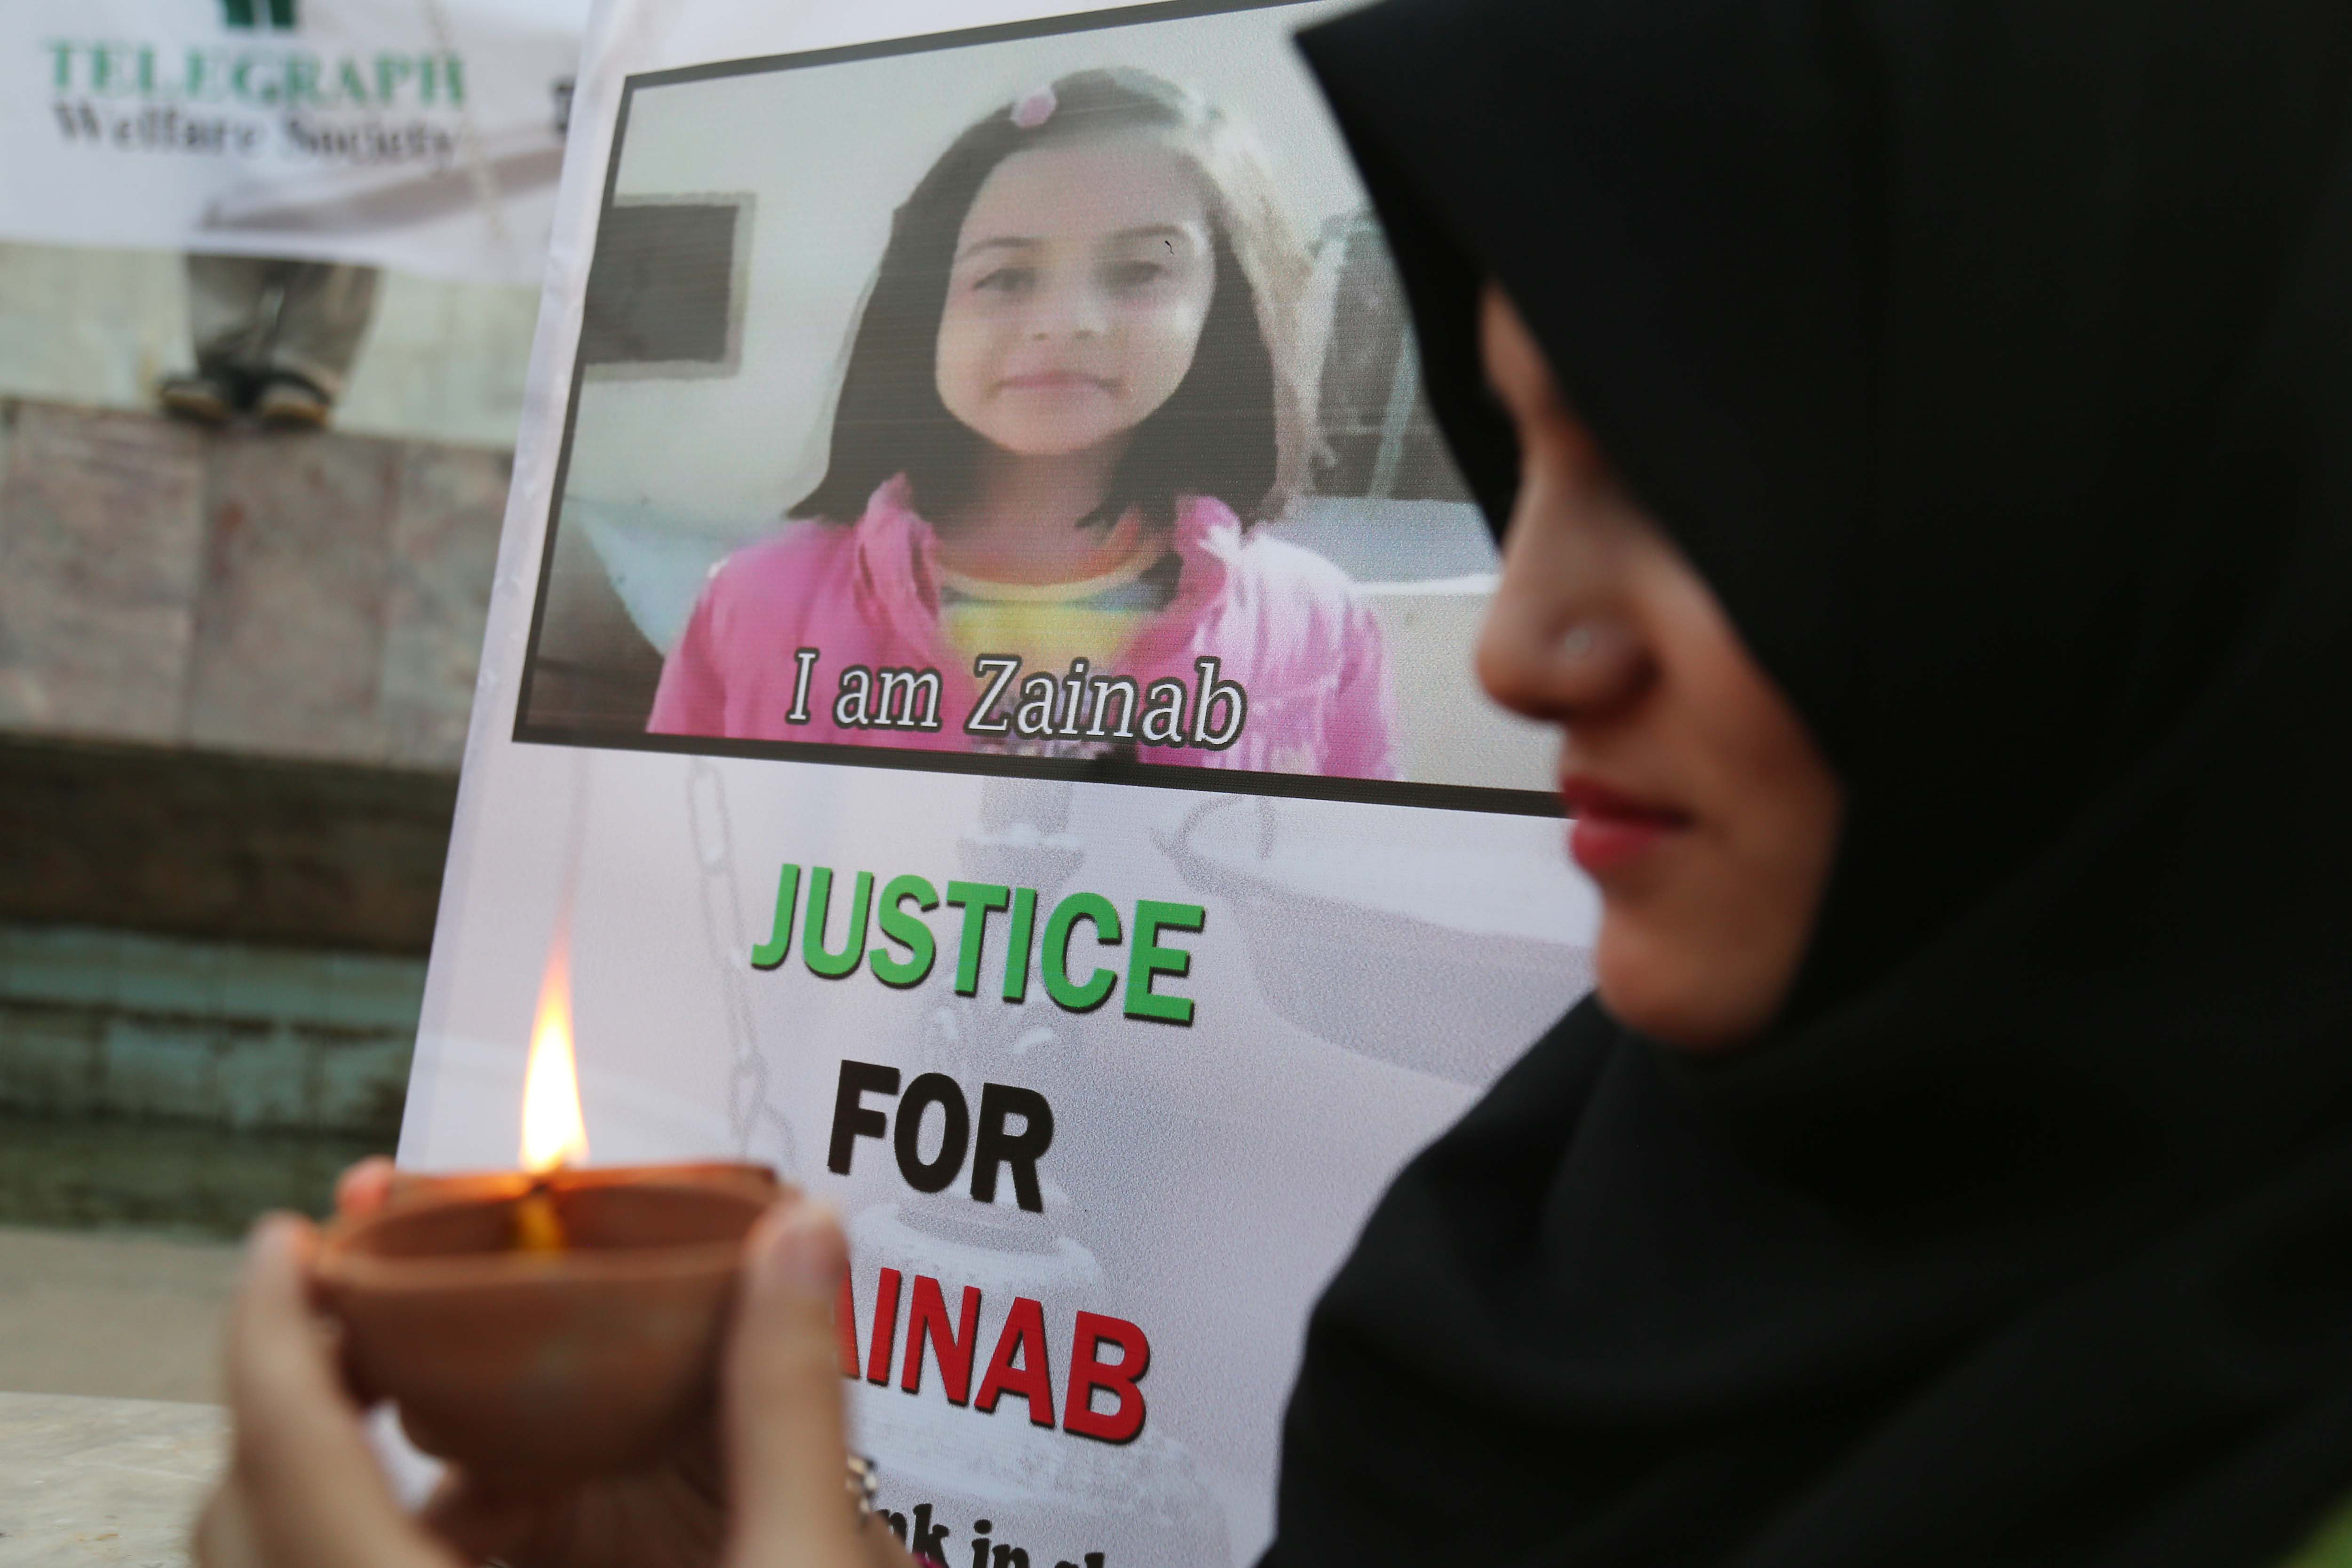 People light earthen lamps during a protest against the rape and murder of a Zainab Ansari in Kasur, Pakistan on Jan. 12 2018.